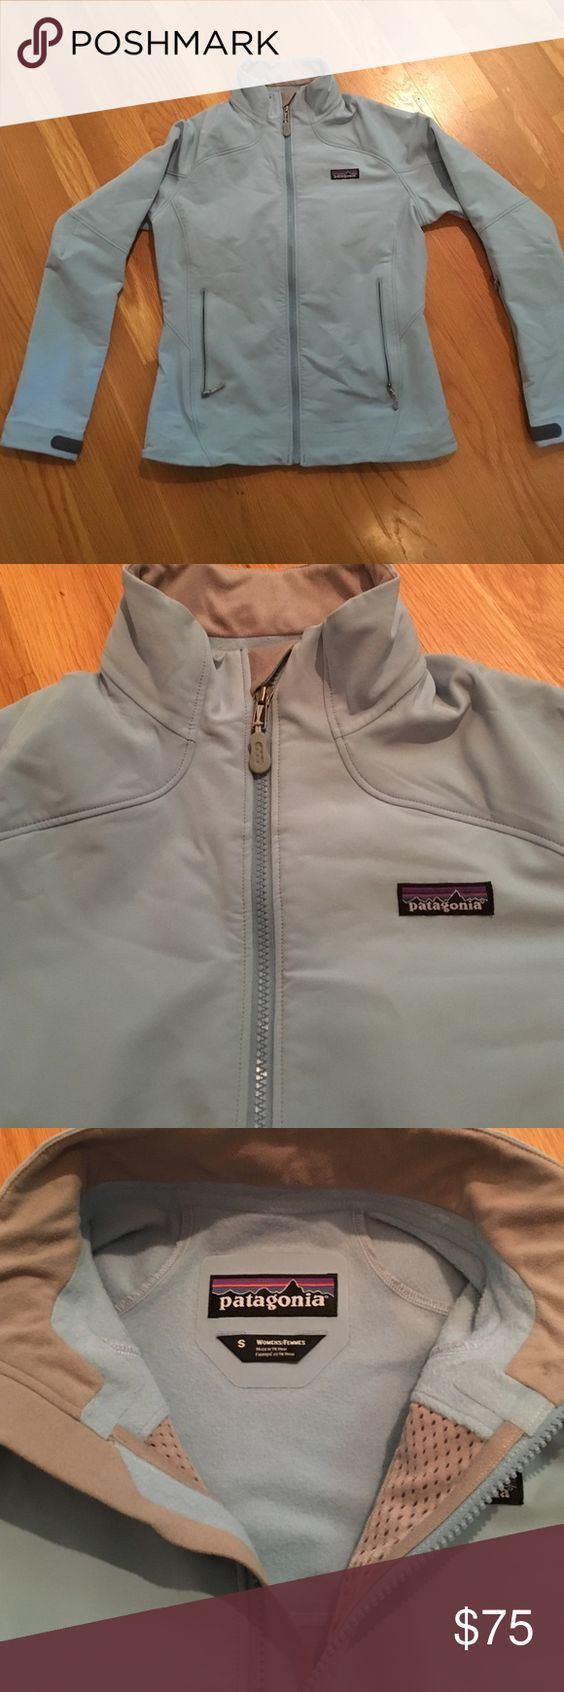 Patagonia light blue lined windbreaker jacket Awesome jacket - thicker than a windbreaker and lined with soft fleece like material. Super warm because of outer jacket material but still thin enough to exercise or wear in fall. Could be layered for a great winter coat too! Size S. Patagonia Jackets & Coats